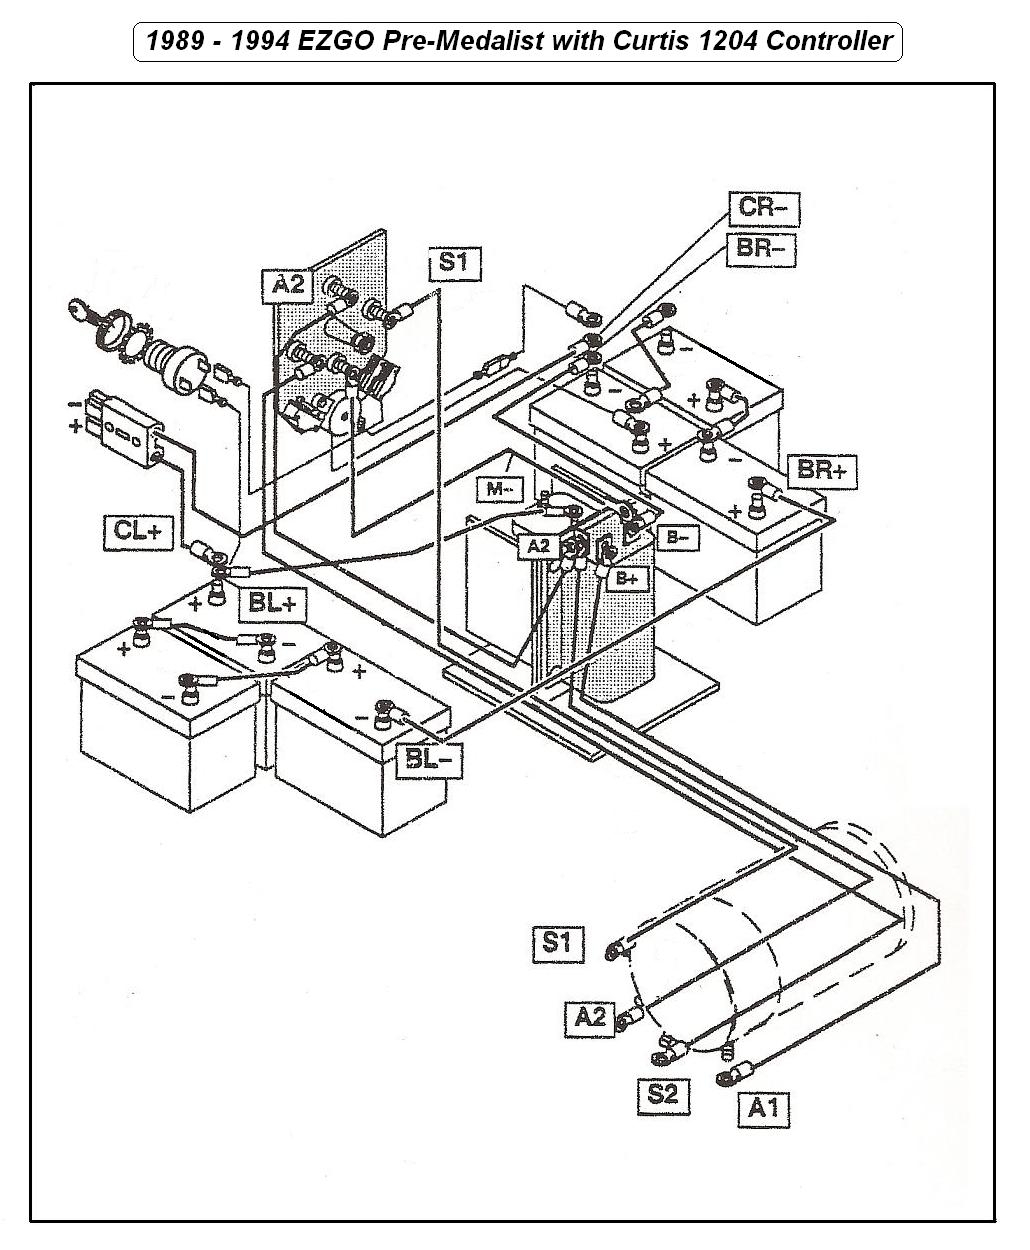 hight resolution of 1987 48 volt ezgo solenoid wiring diagram simple wiring diagrams 48 volt golf cart wiring golf cart 48 volt wiring